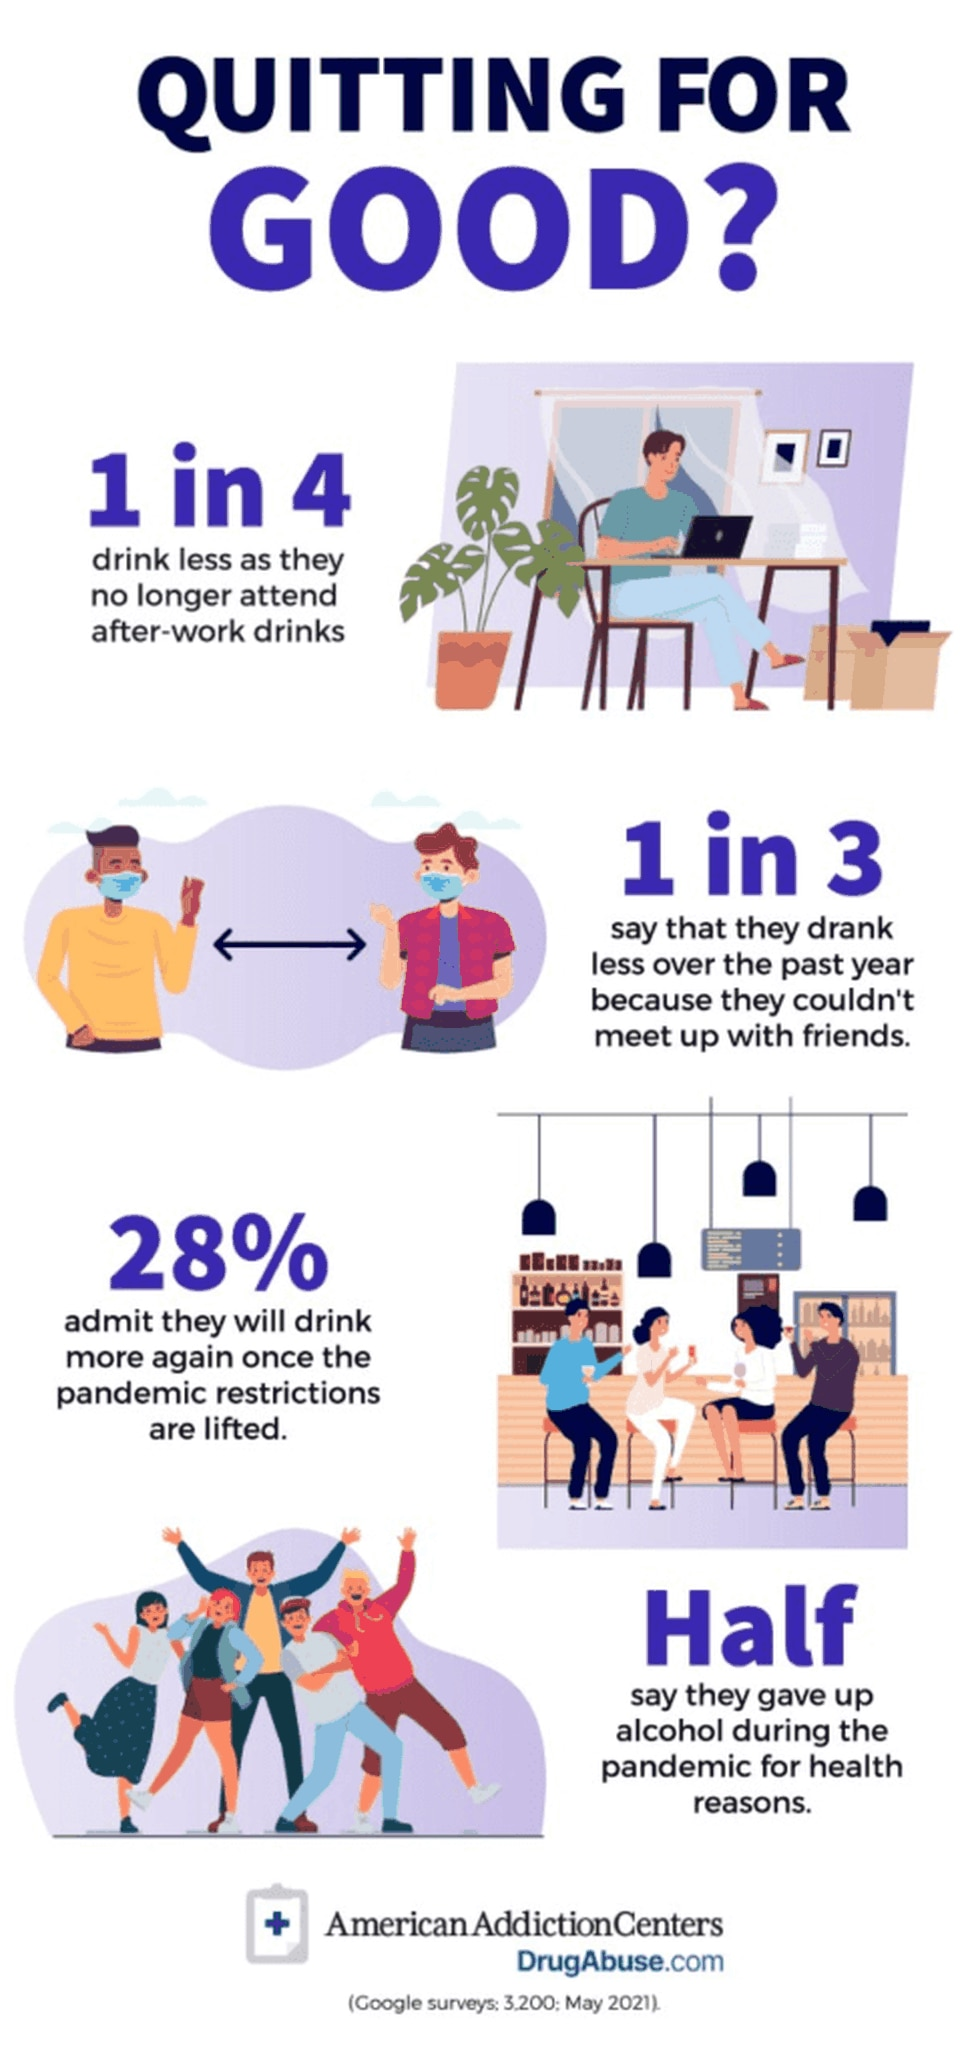 The survey, conducted by DrugAbuse.com, points to socializing as a main reason why more than 1...